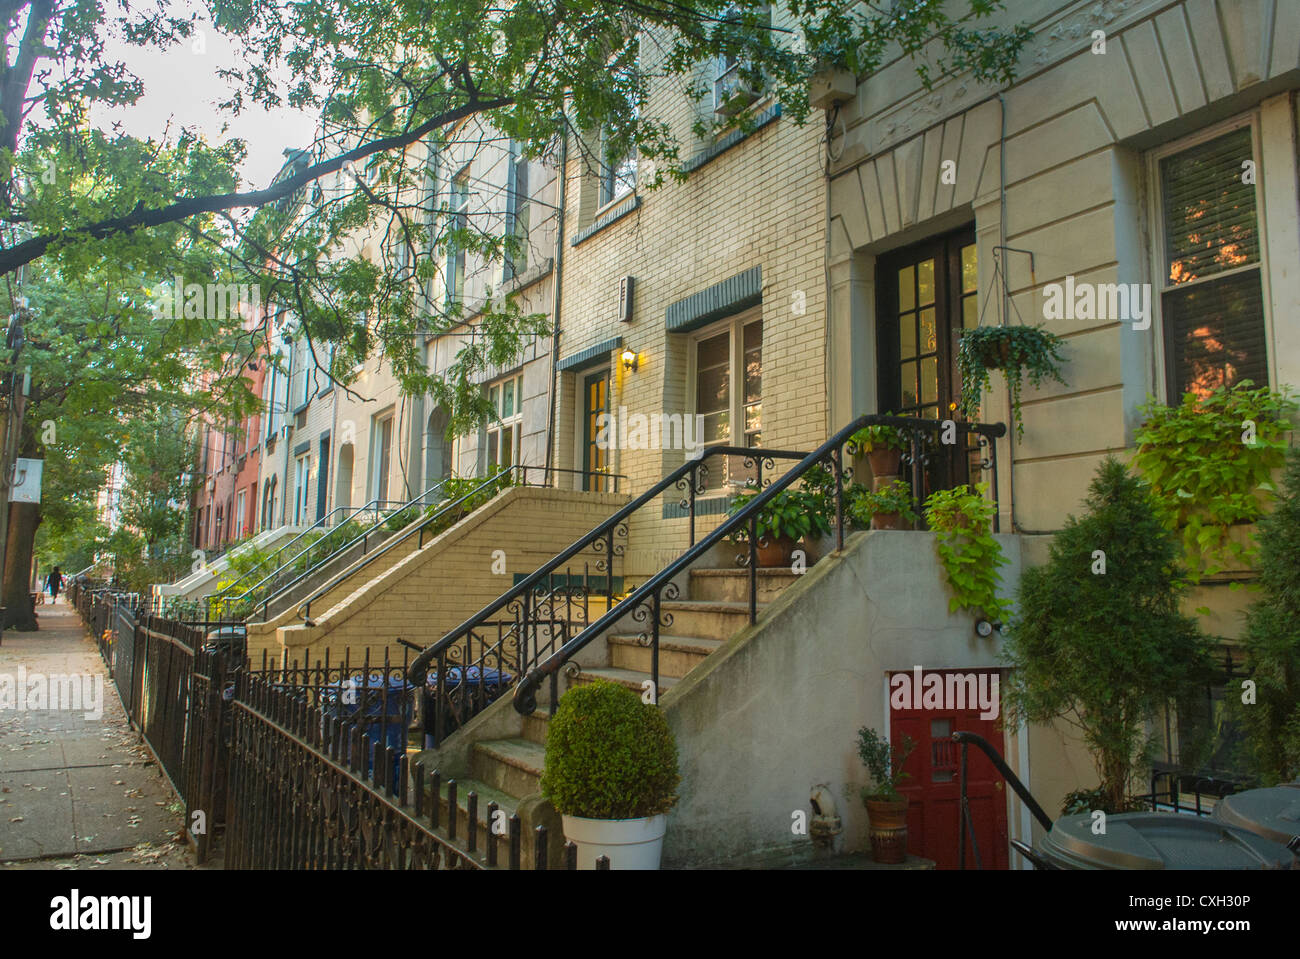 Hoboken New Jersey Usa Street Scenes Townhouses Row Houses Stock Photo Alamy